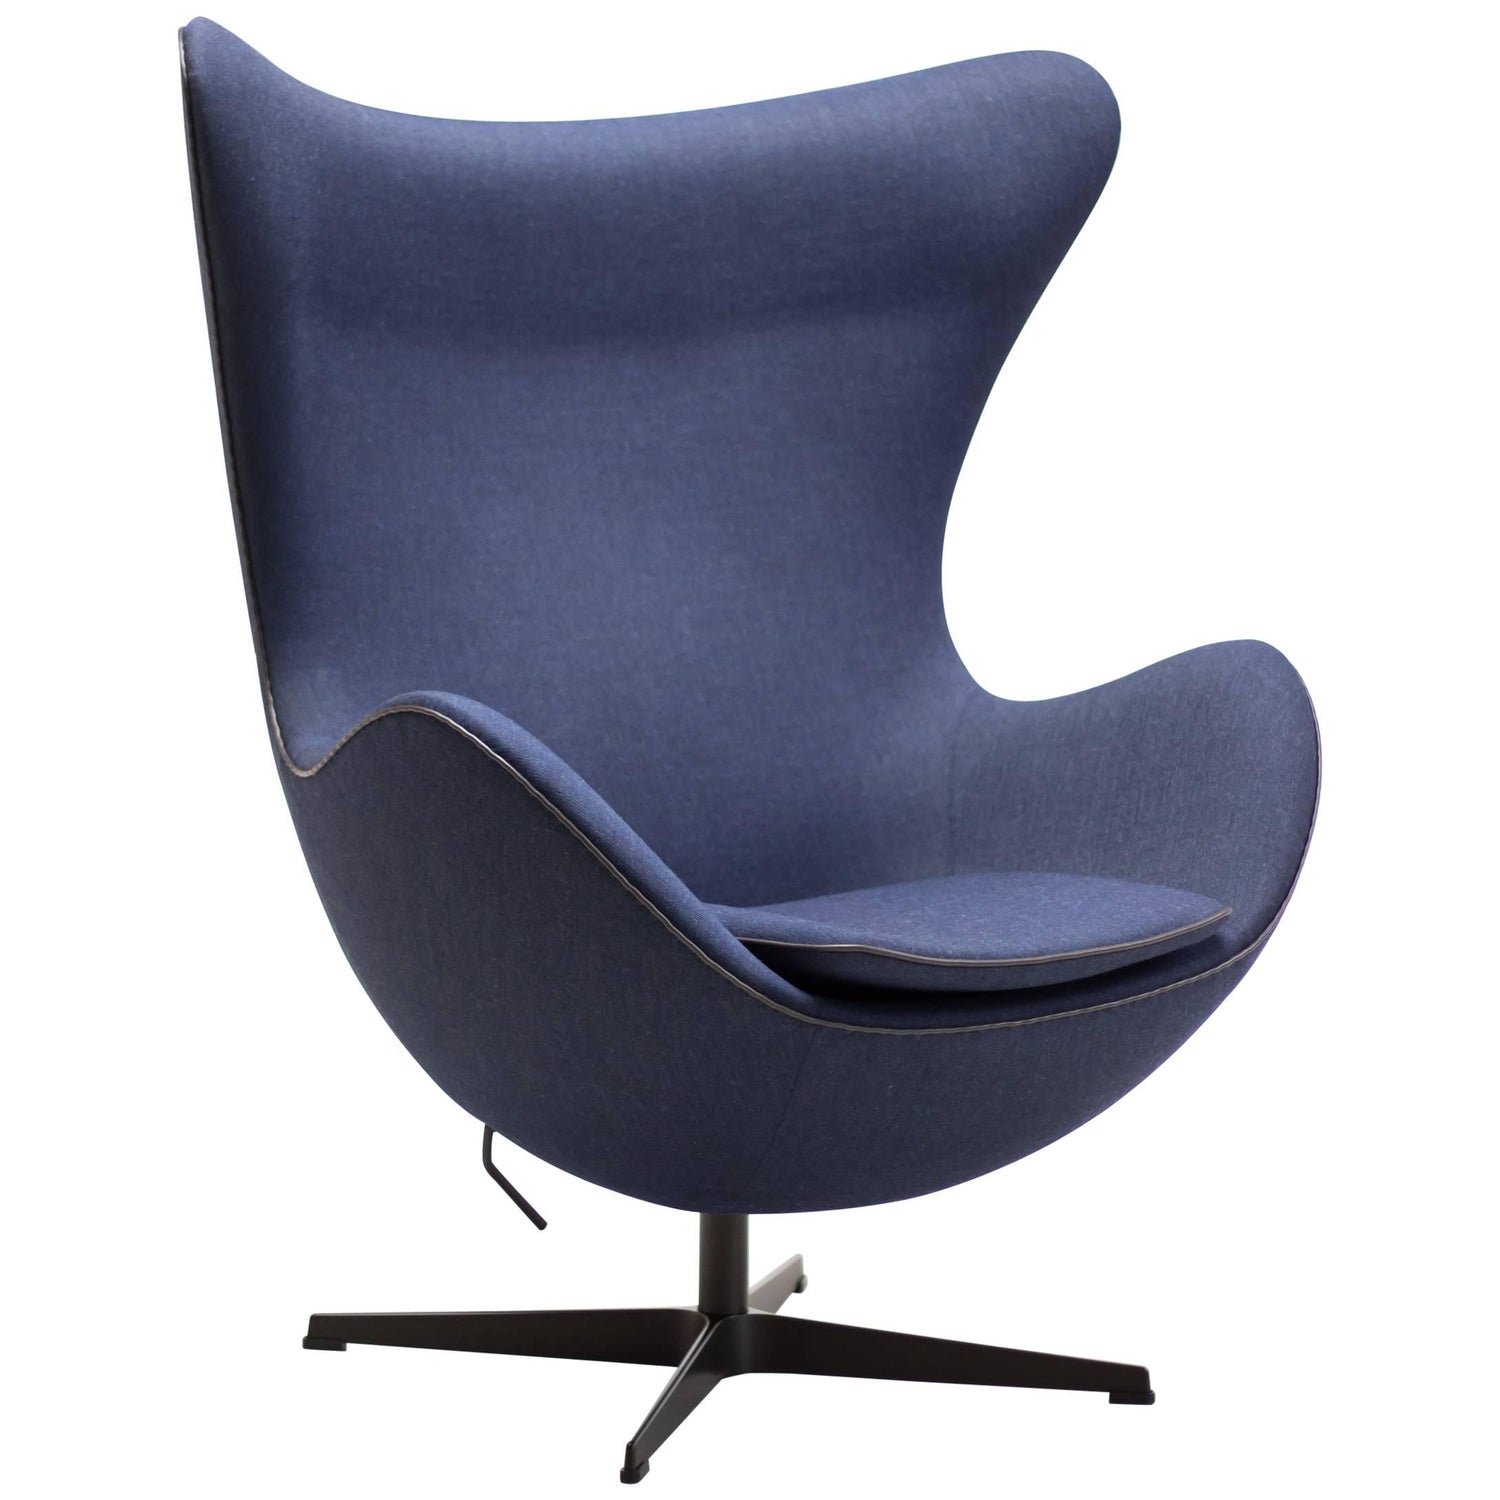 Fritz Hansen's Choice, Limited Edition Egg Chair by Arne Jacobsen